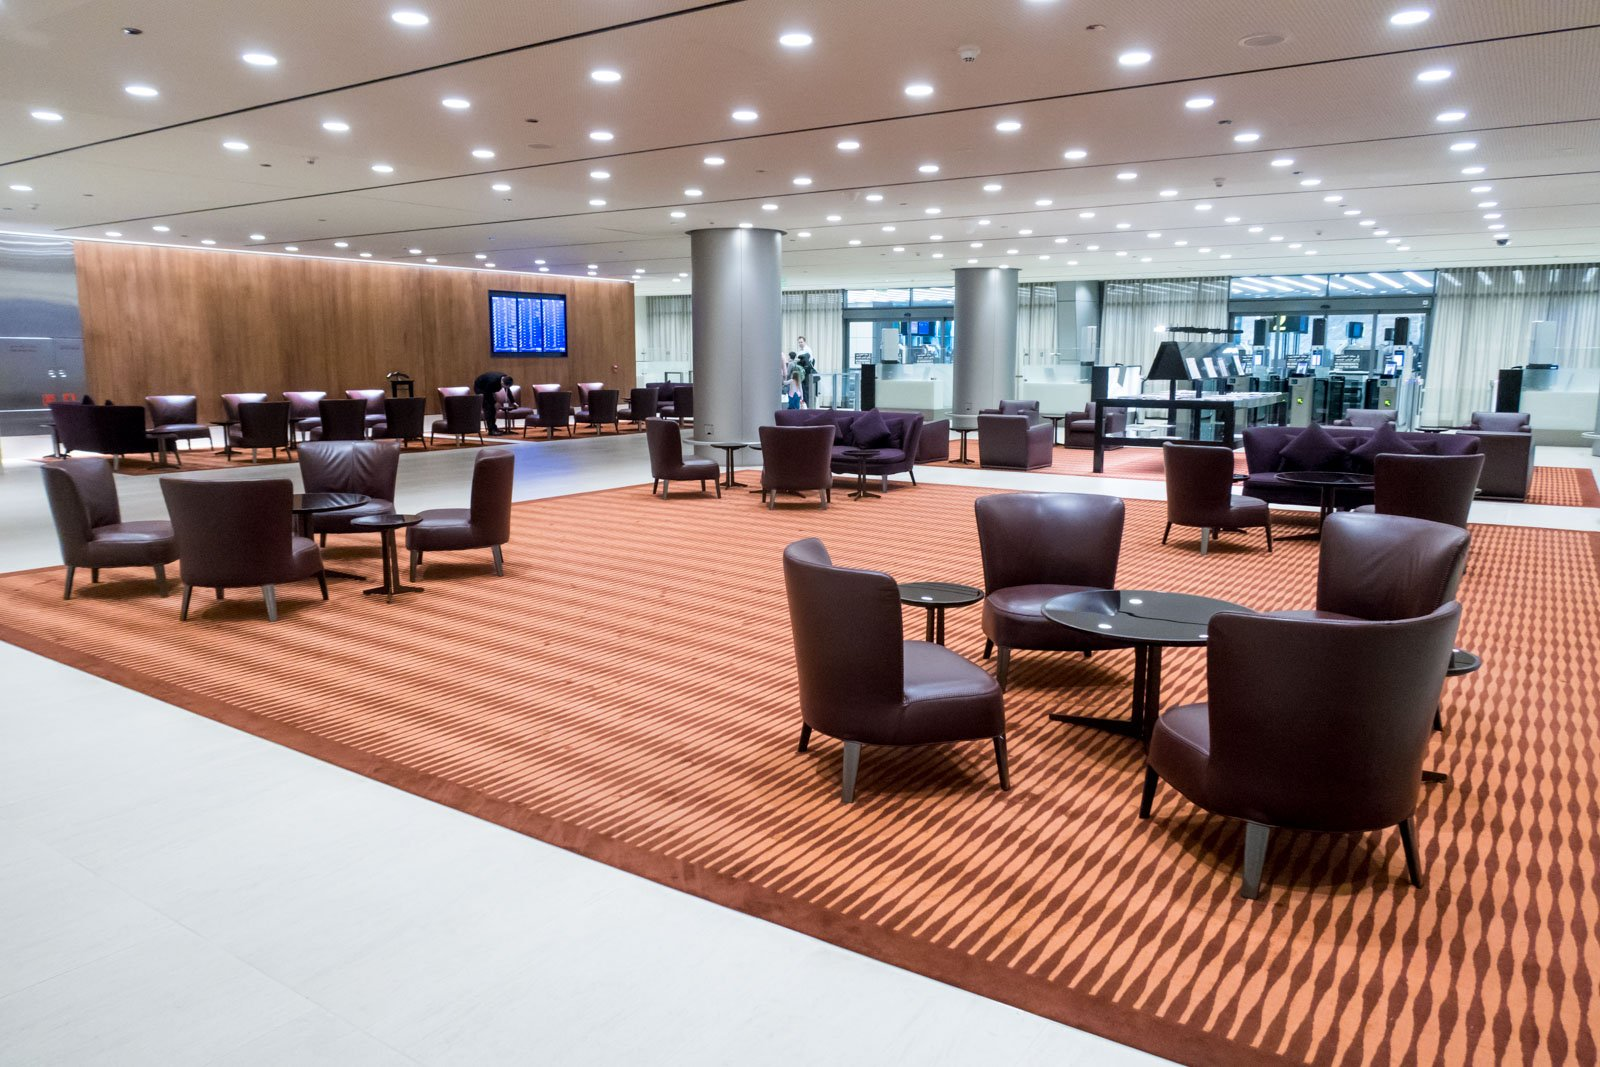 Seating Area in Business Class Immigration Area in Doha